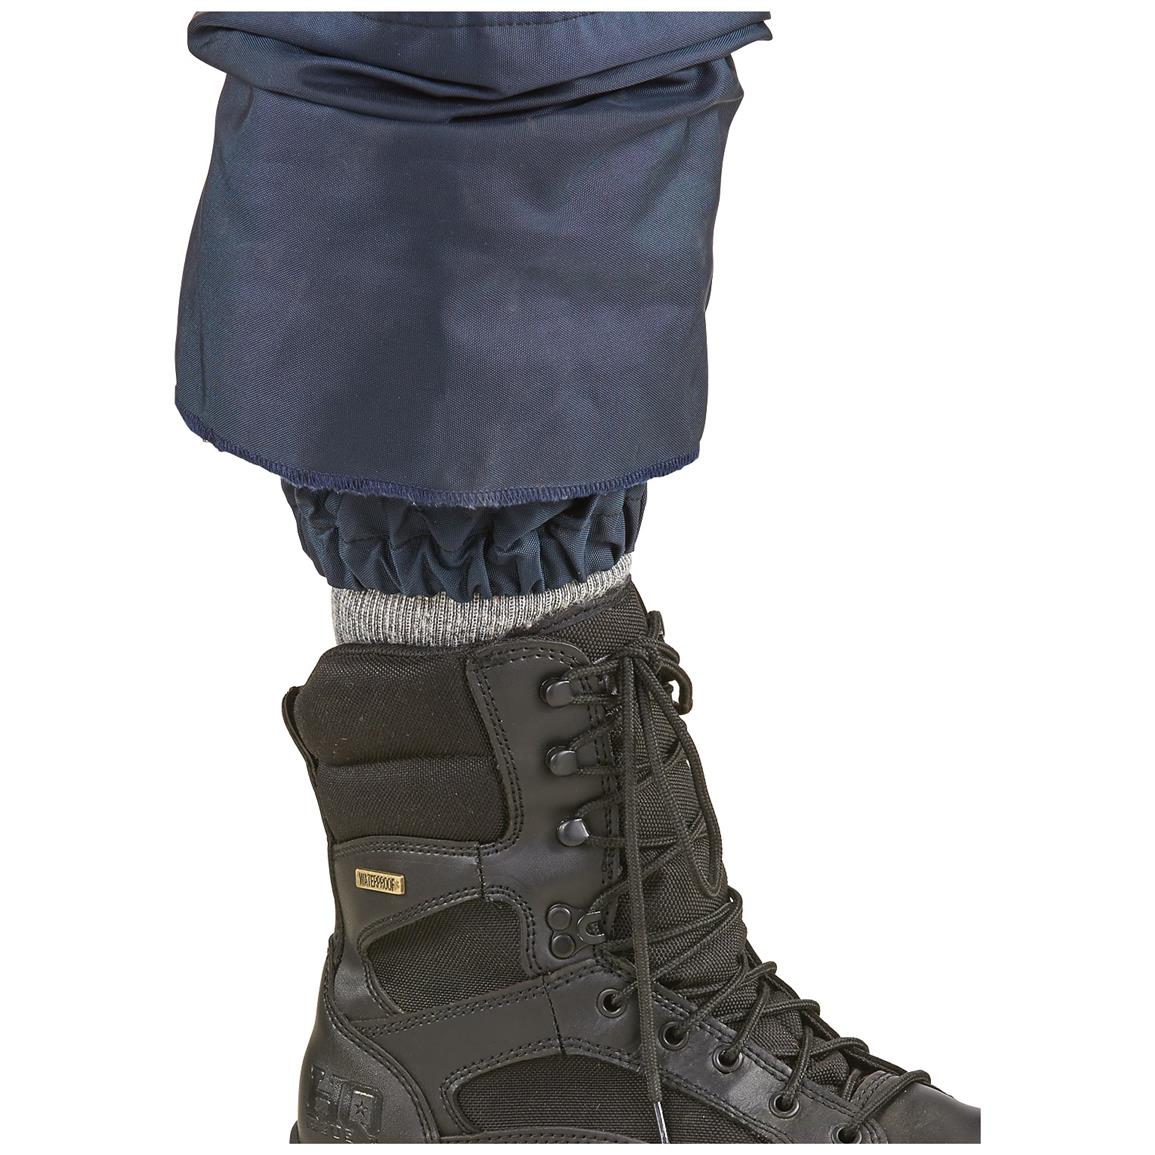 Water Resistant built in gaiters and reinforced bottom cuffs